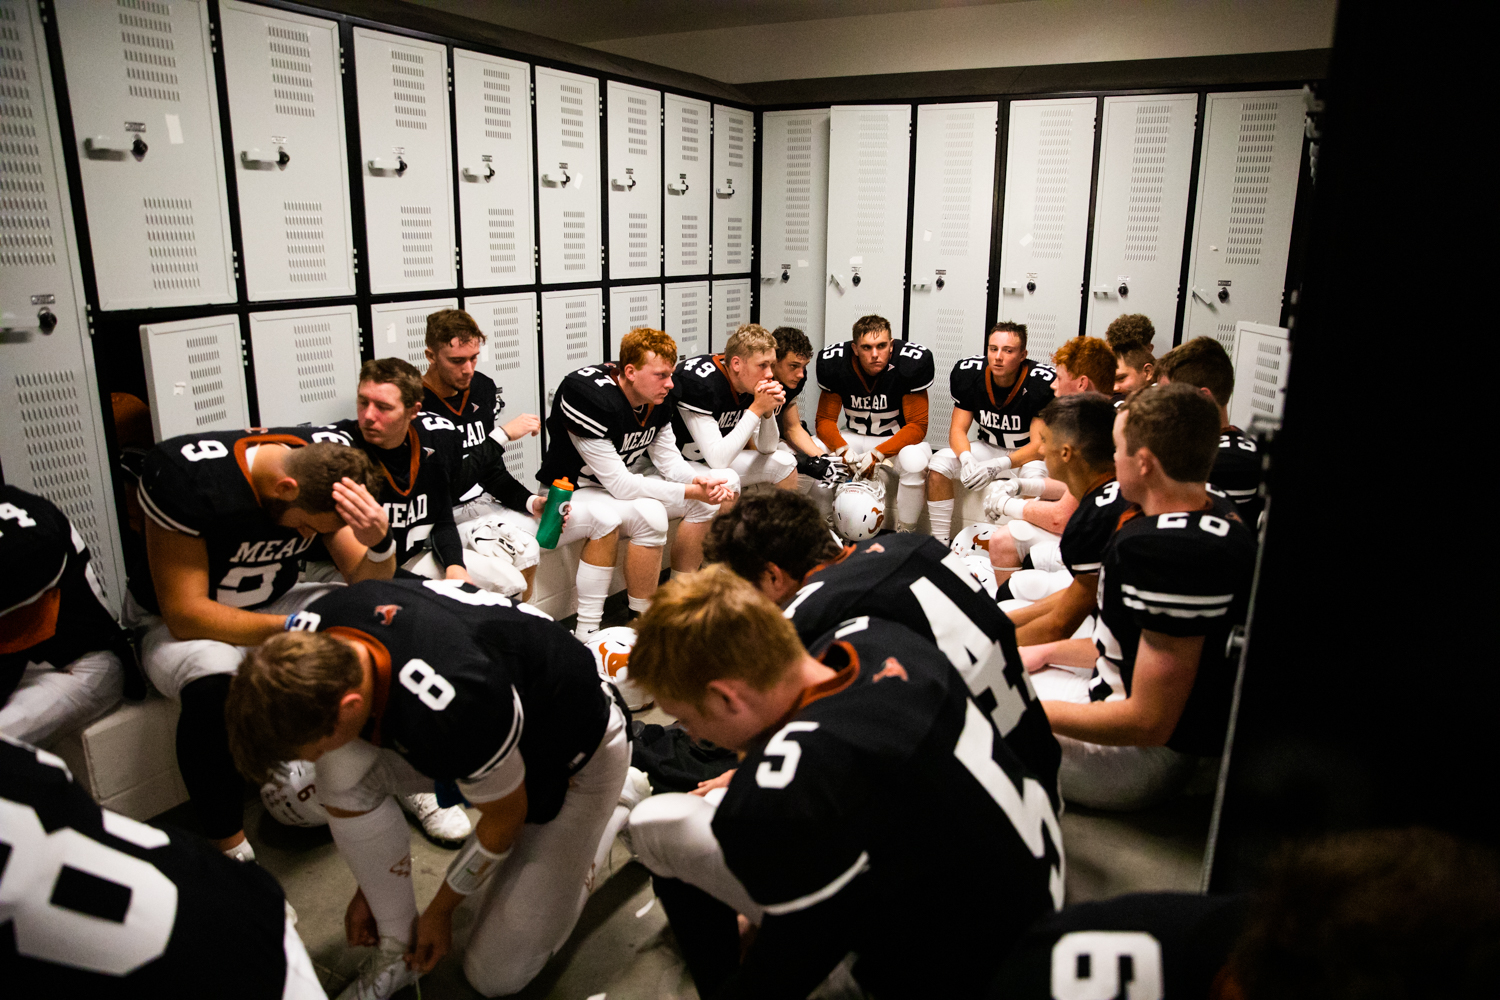 Players+from+the+football+team+wait+inside+the+locker+room+before+the+game.